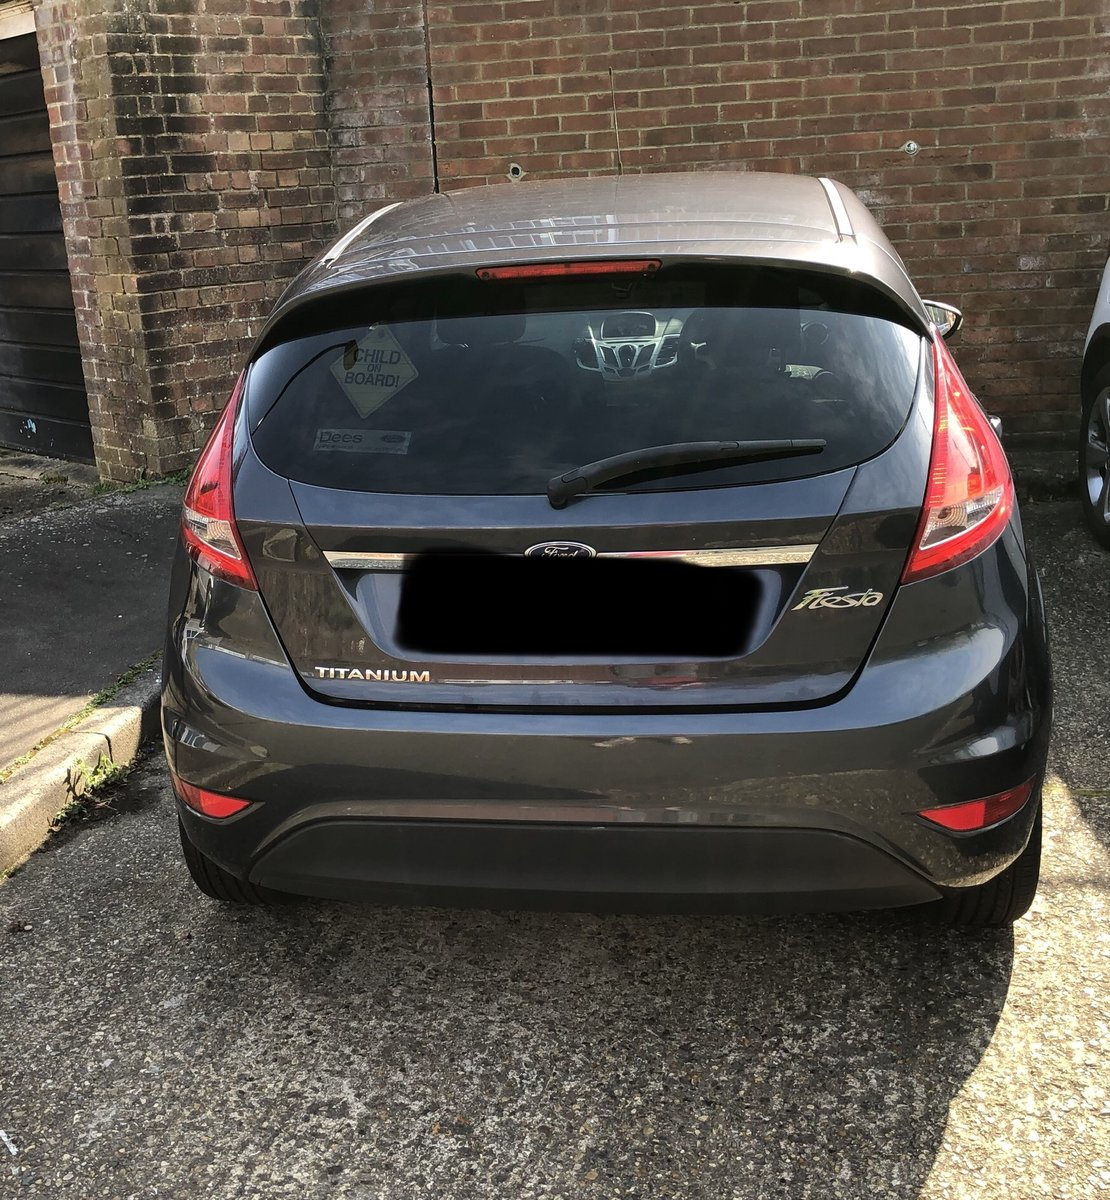 2009 Ford Fiesta 1.4 titanium For Sale (picture 3 of 6)